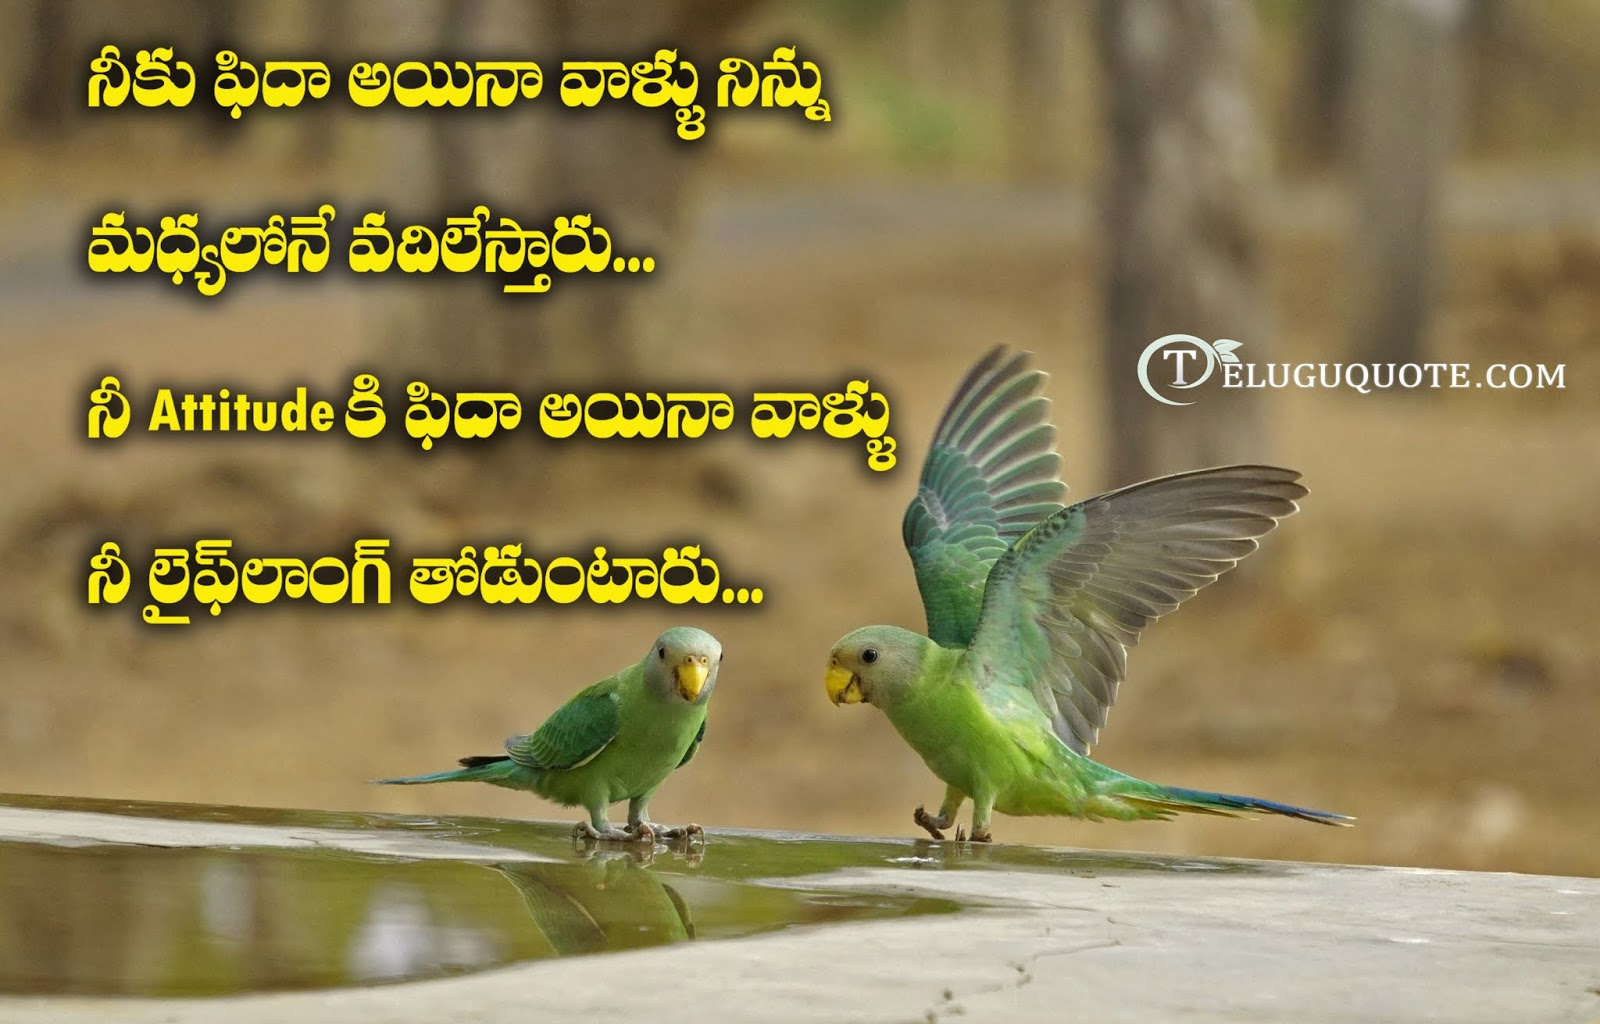 Telugu love quotations free download